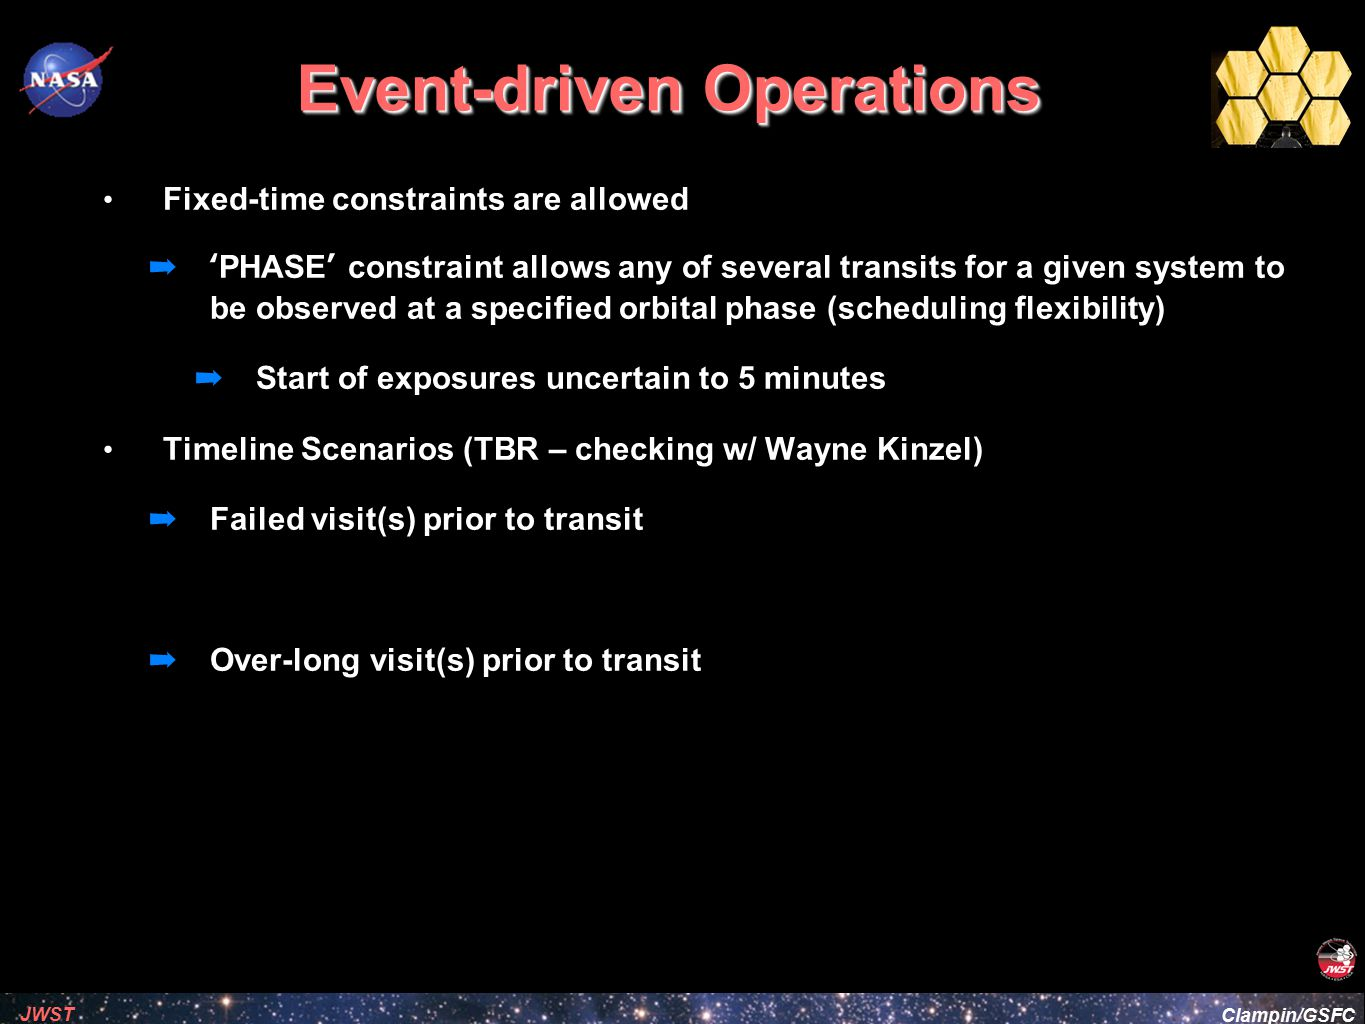 Event-driven Operations